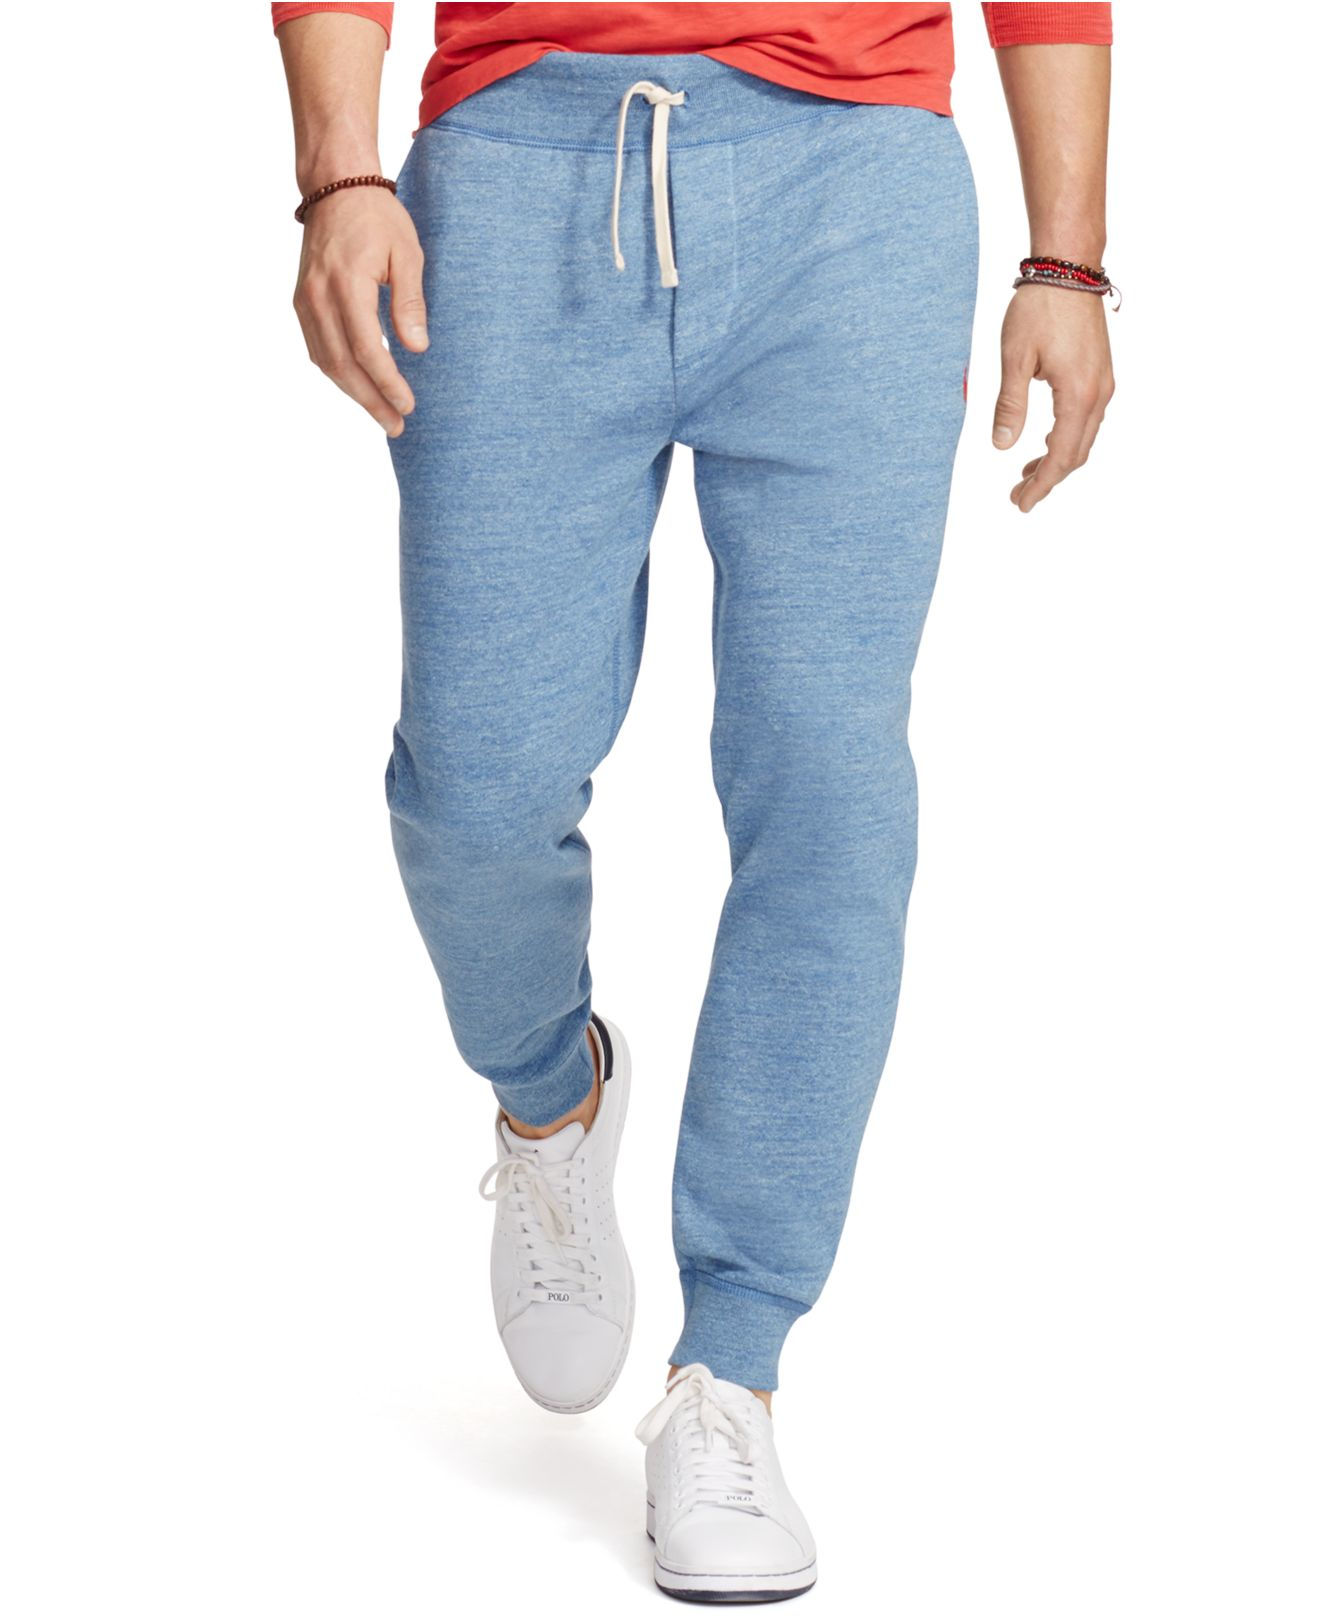 lyst  polo ralph lauren men's fleece jogger pants in blue